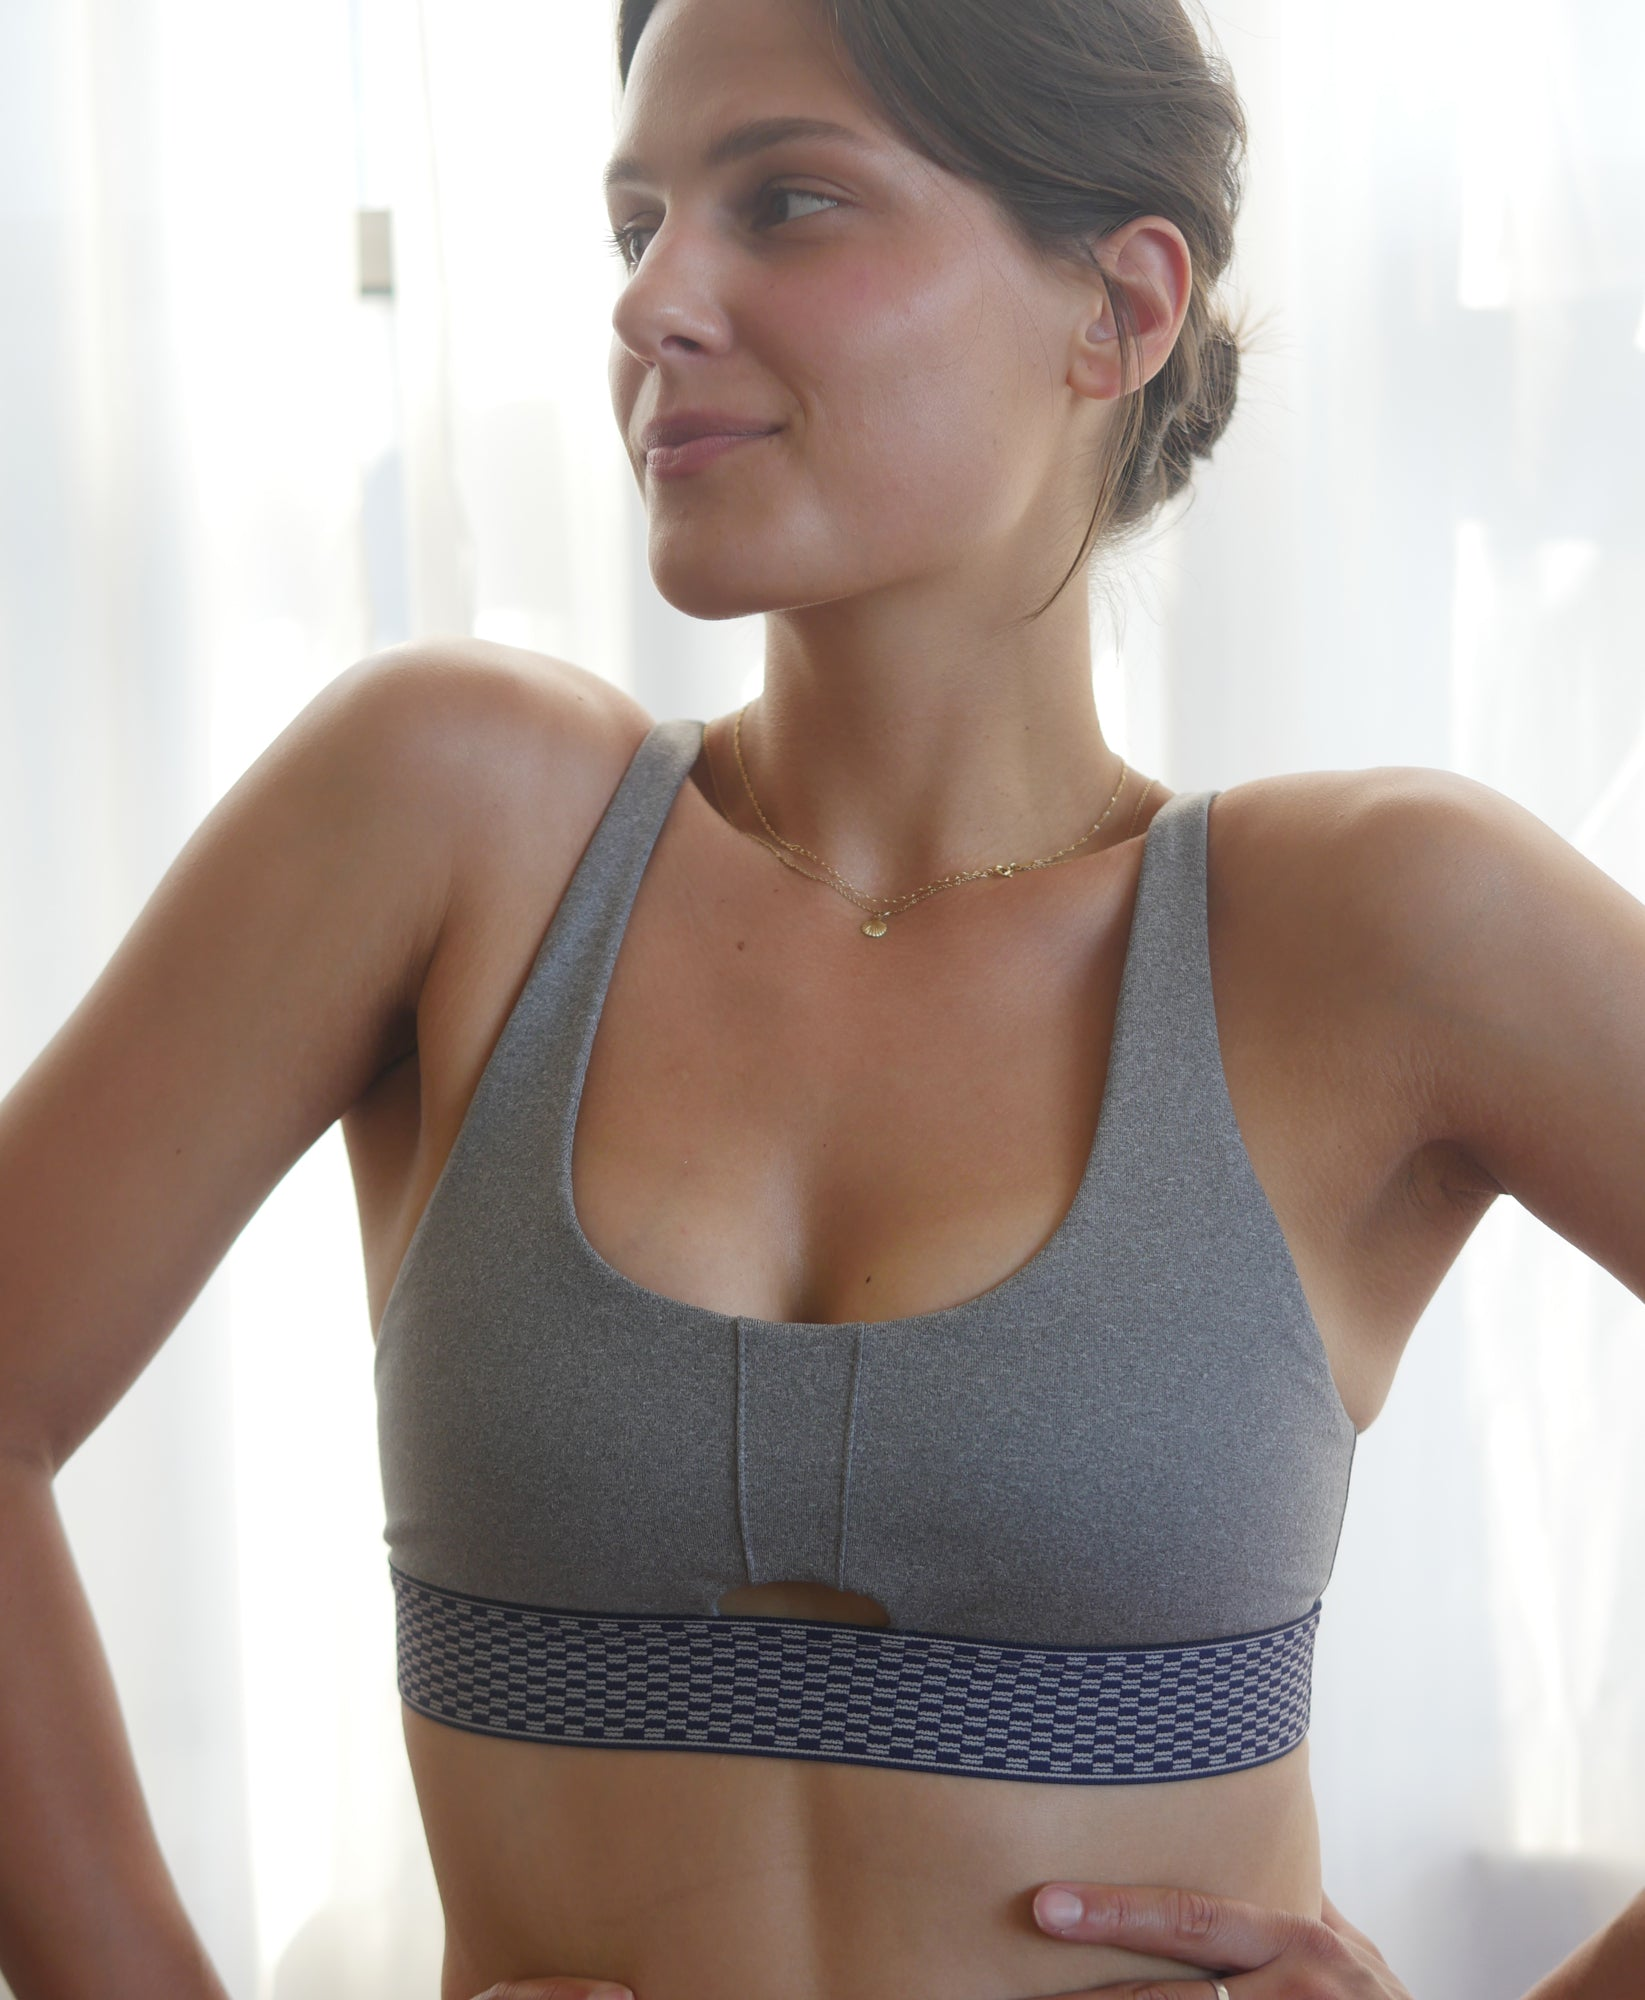 Wear One's At Keyhole Bra in Sport Grey on Model Front Detail View